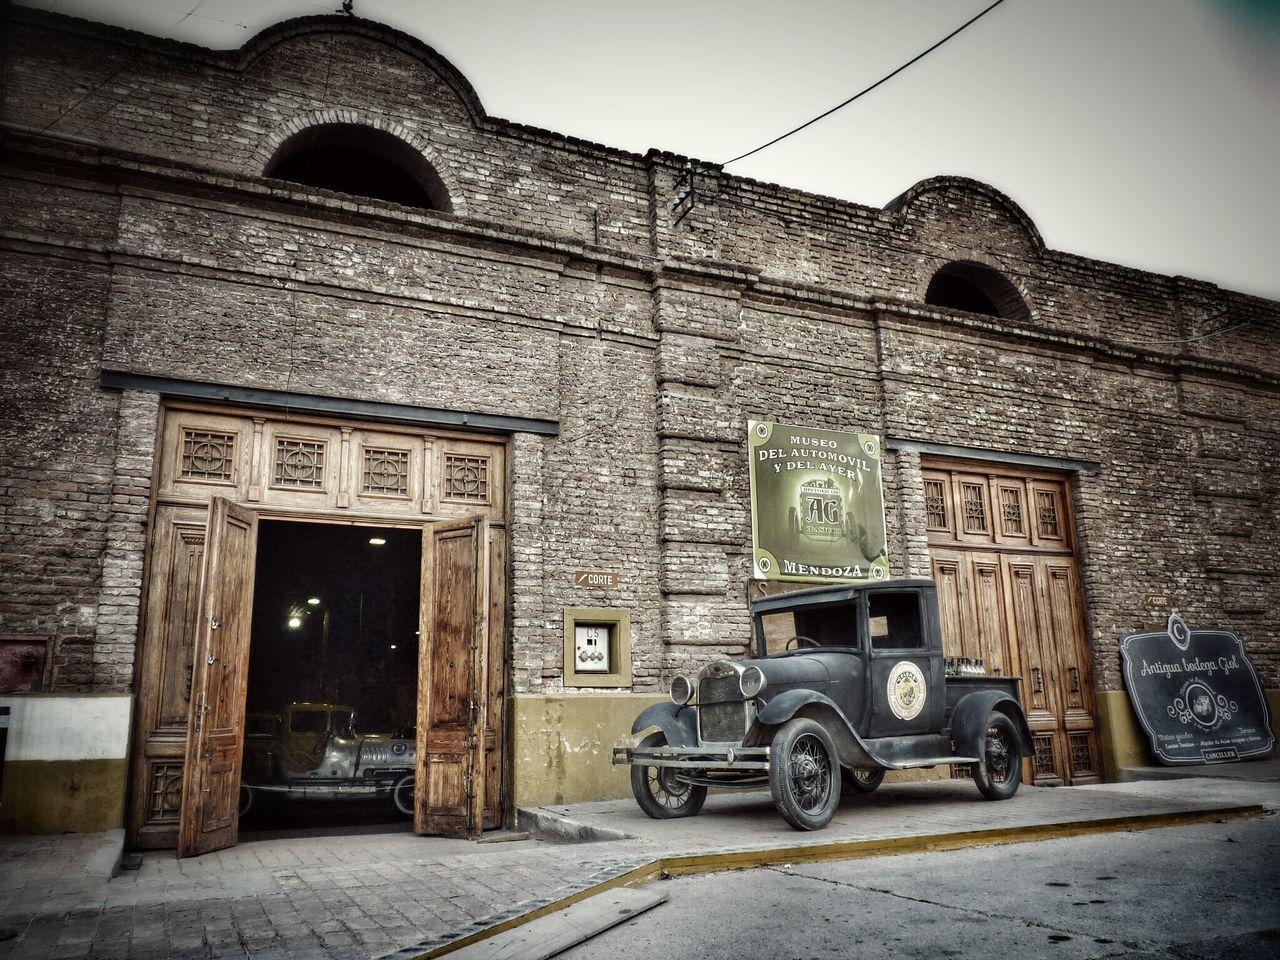 Yesterday's Museum. Old Days Vintage Photo Architecture Building Exterior Façade Door Entrance No People Outdoors Day Sky History Museum Building Interior Old Cars Perspective Brick Wall Cloudy Old Times First Eyeem Photo Edited